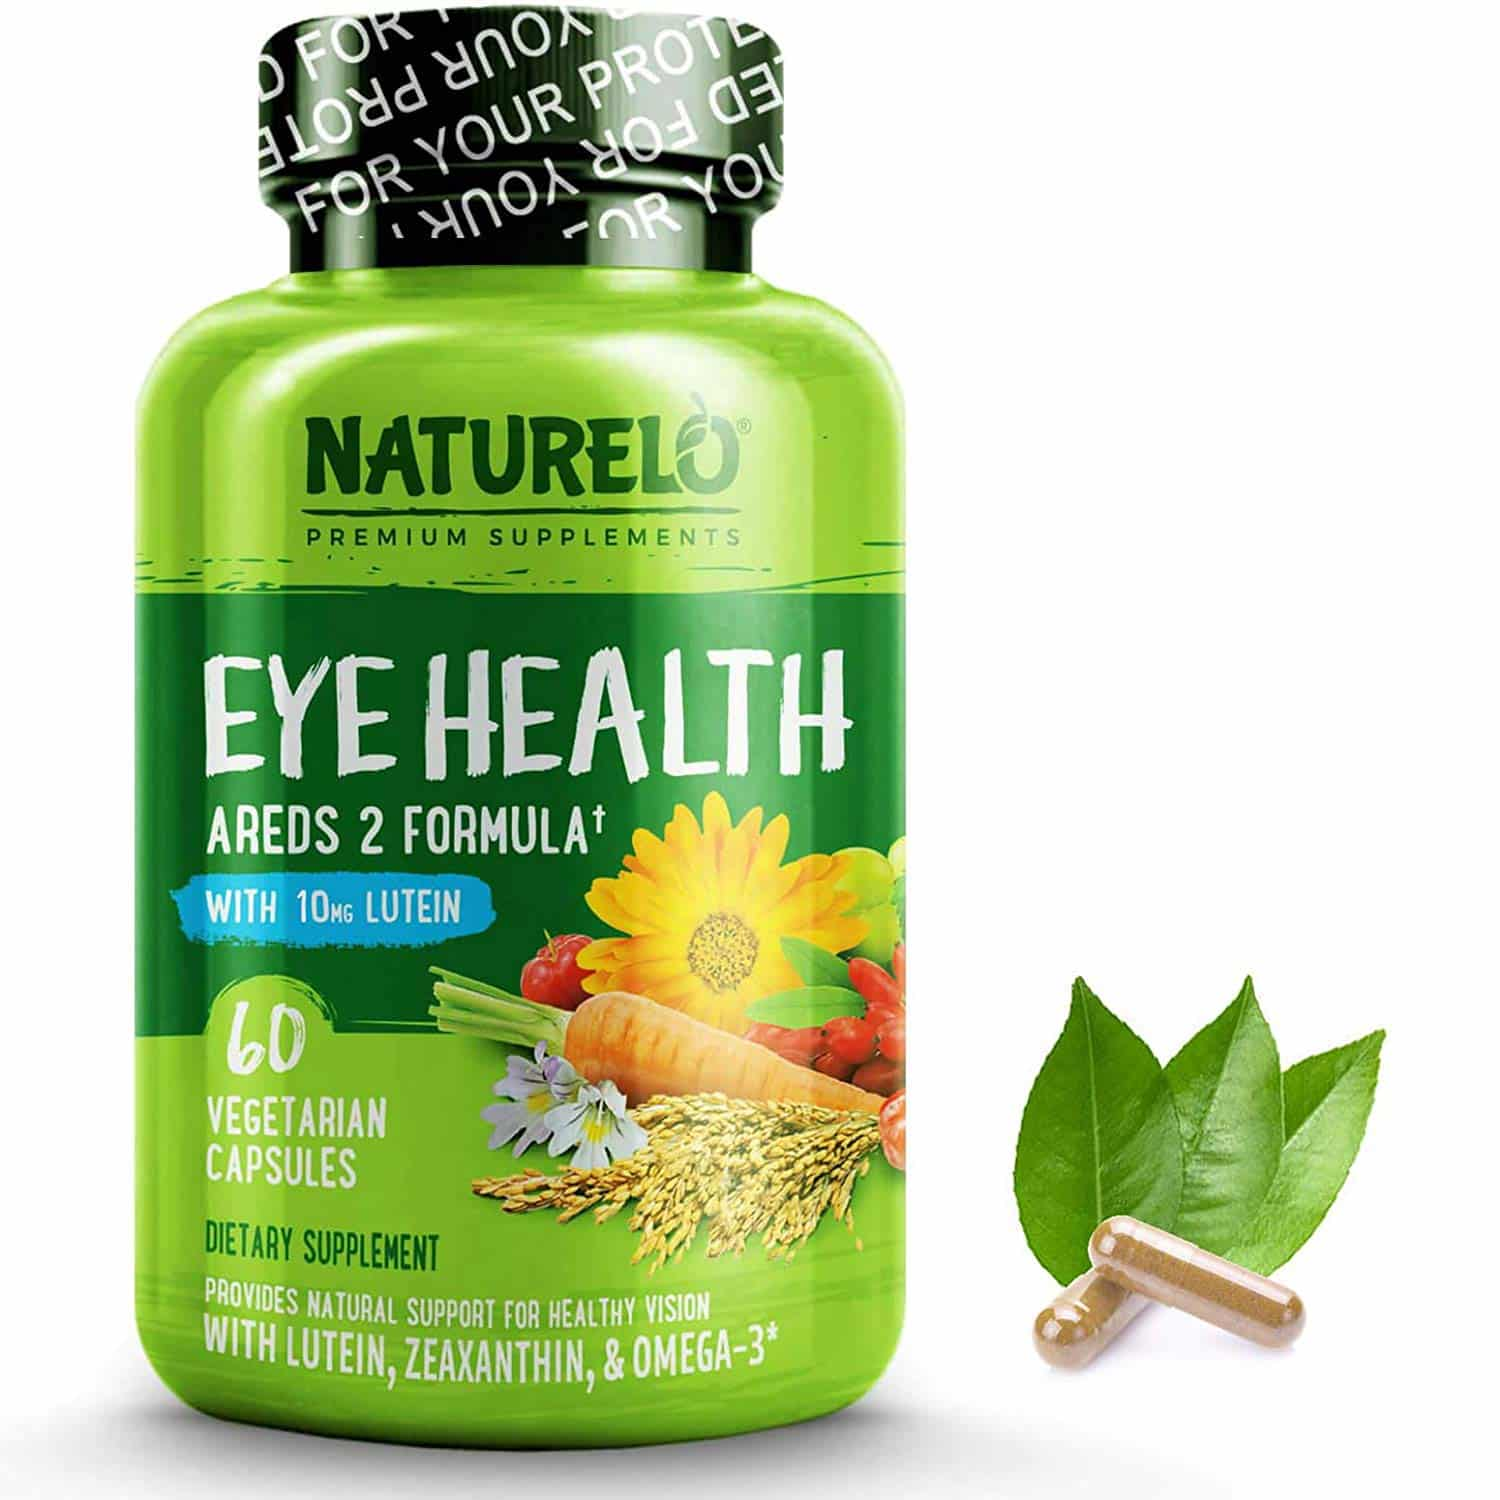 Naturelo-Eye-Vitamins-Areds-2-Formula